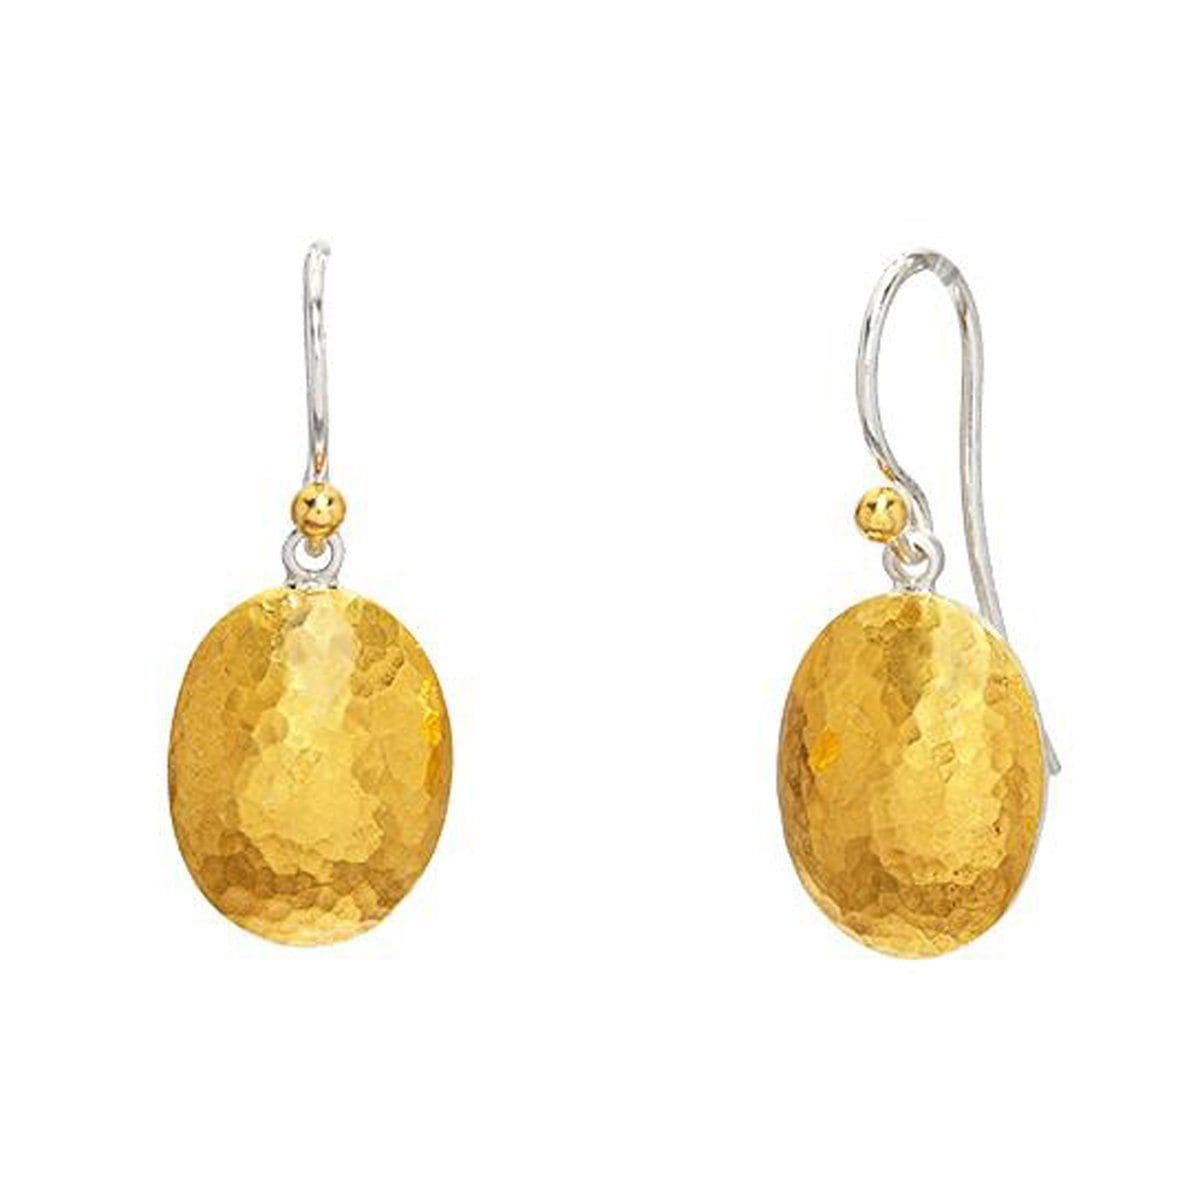 Sterling Silver & 24 Layered Gold Drop Earrings - EHSG-LT1411-G-GURHAN-Renee Taylor Gallery